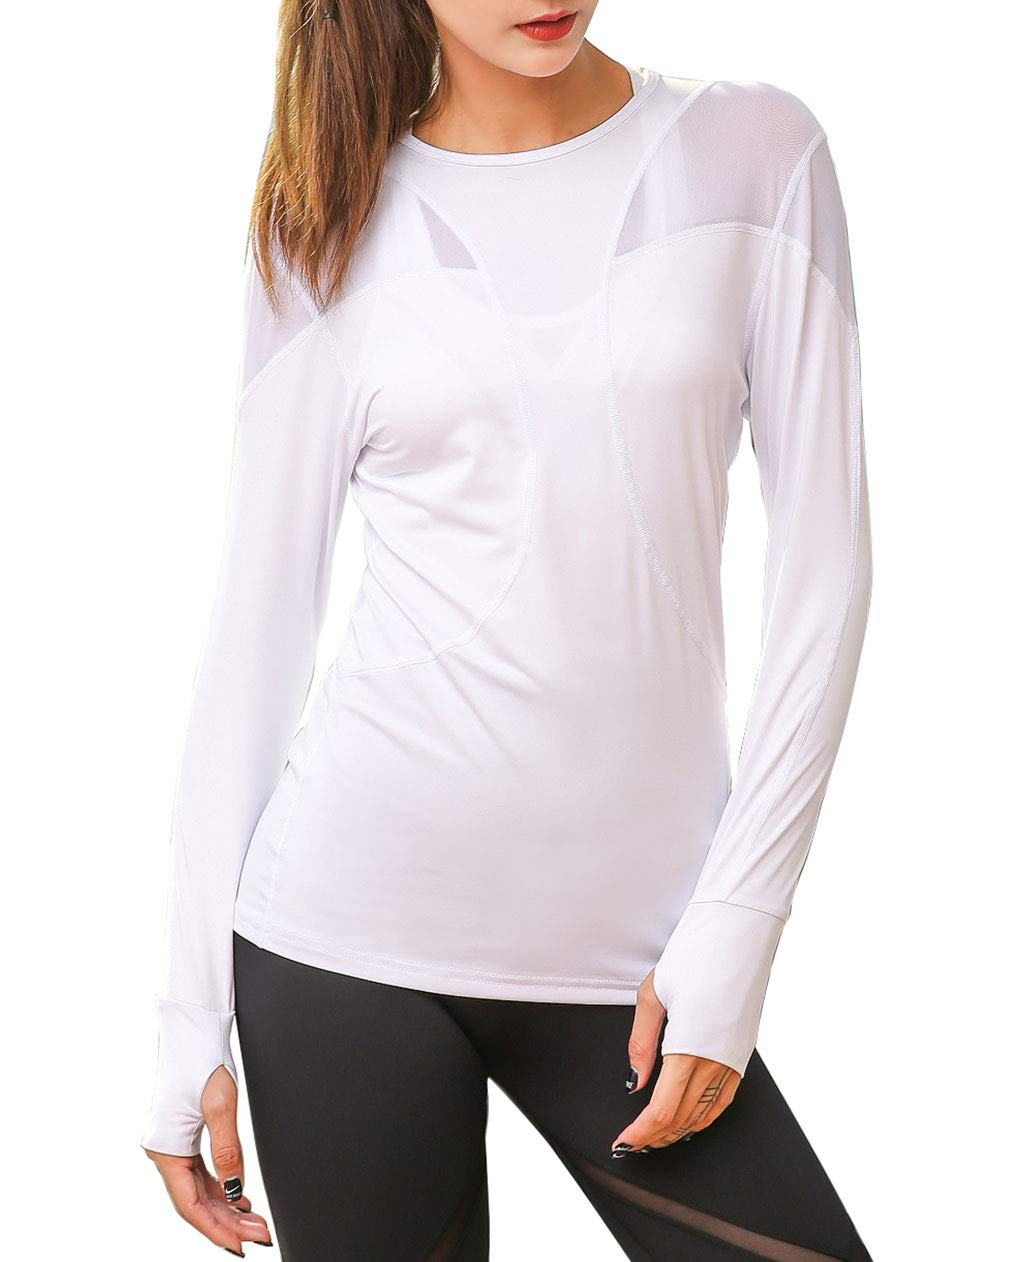 UDIY Women's Seamless Active Long Sleeve Workout Running Athletic Sports Leisure T-Shirt, White by UDIY